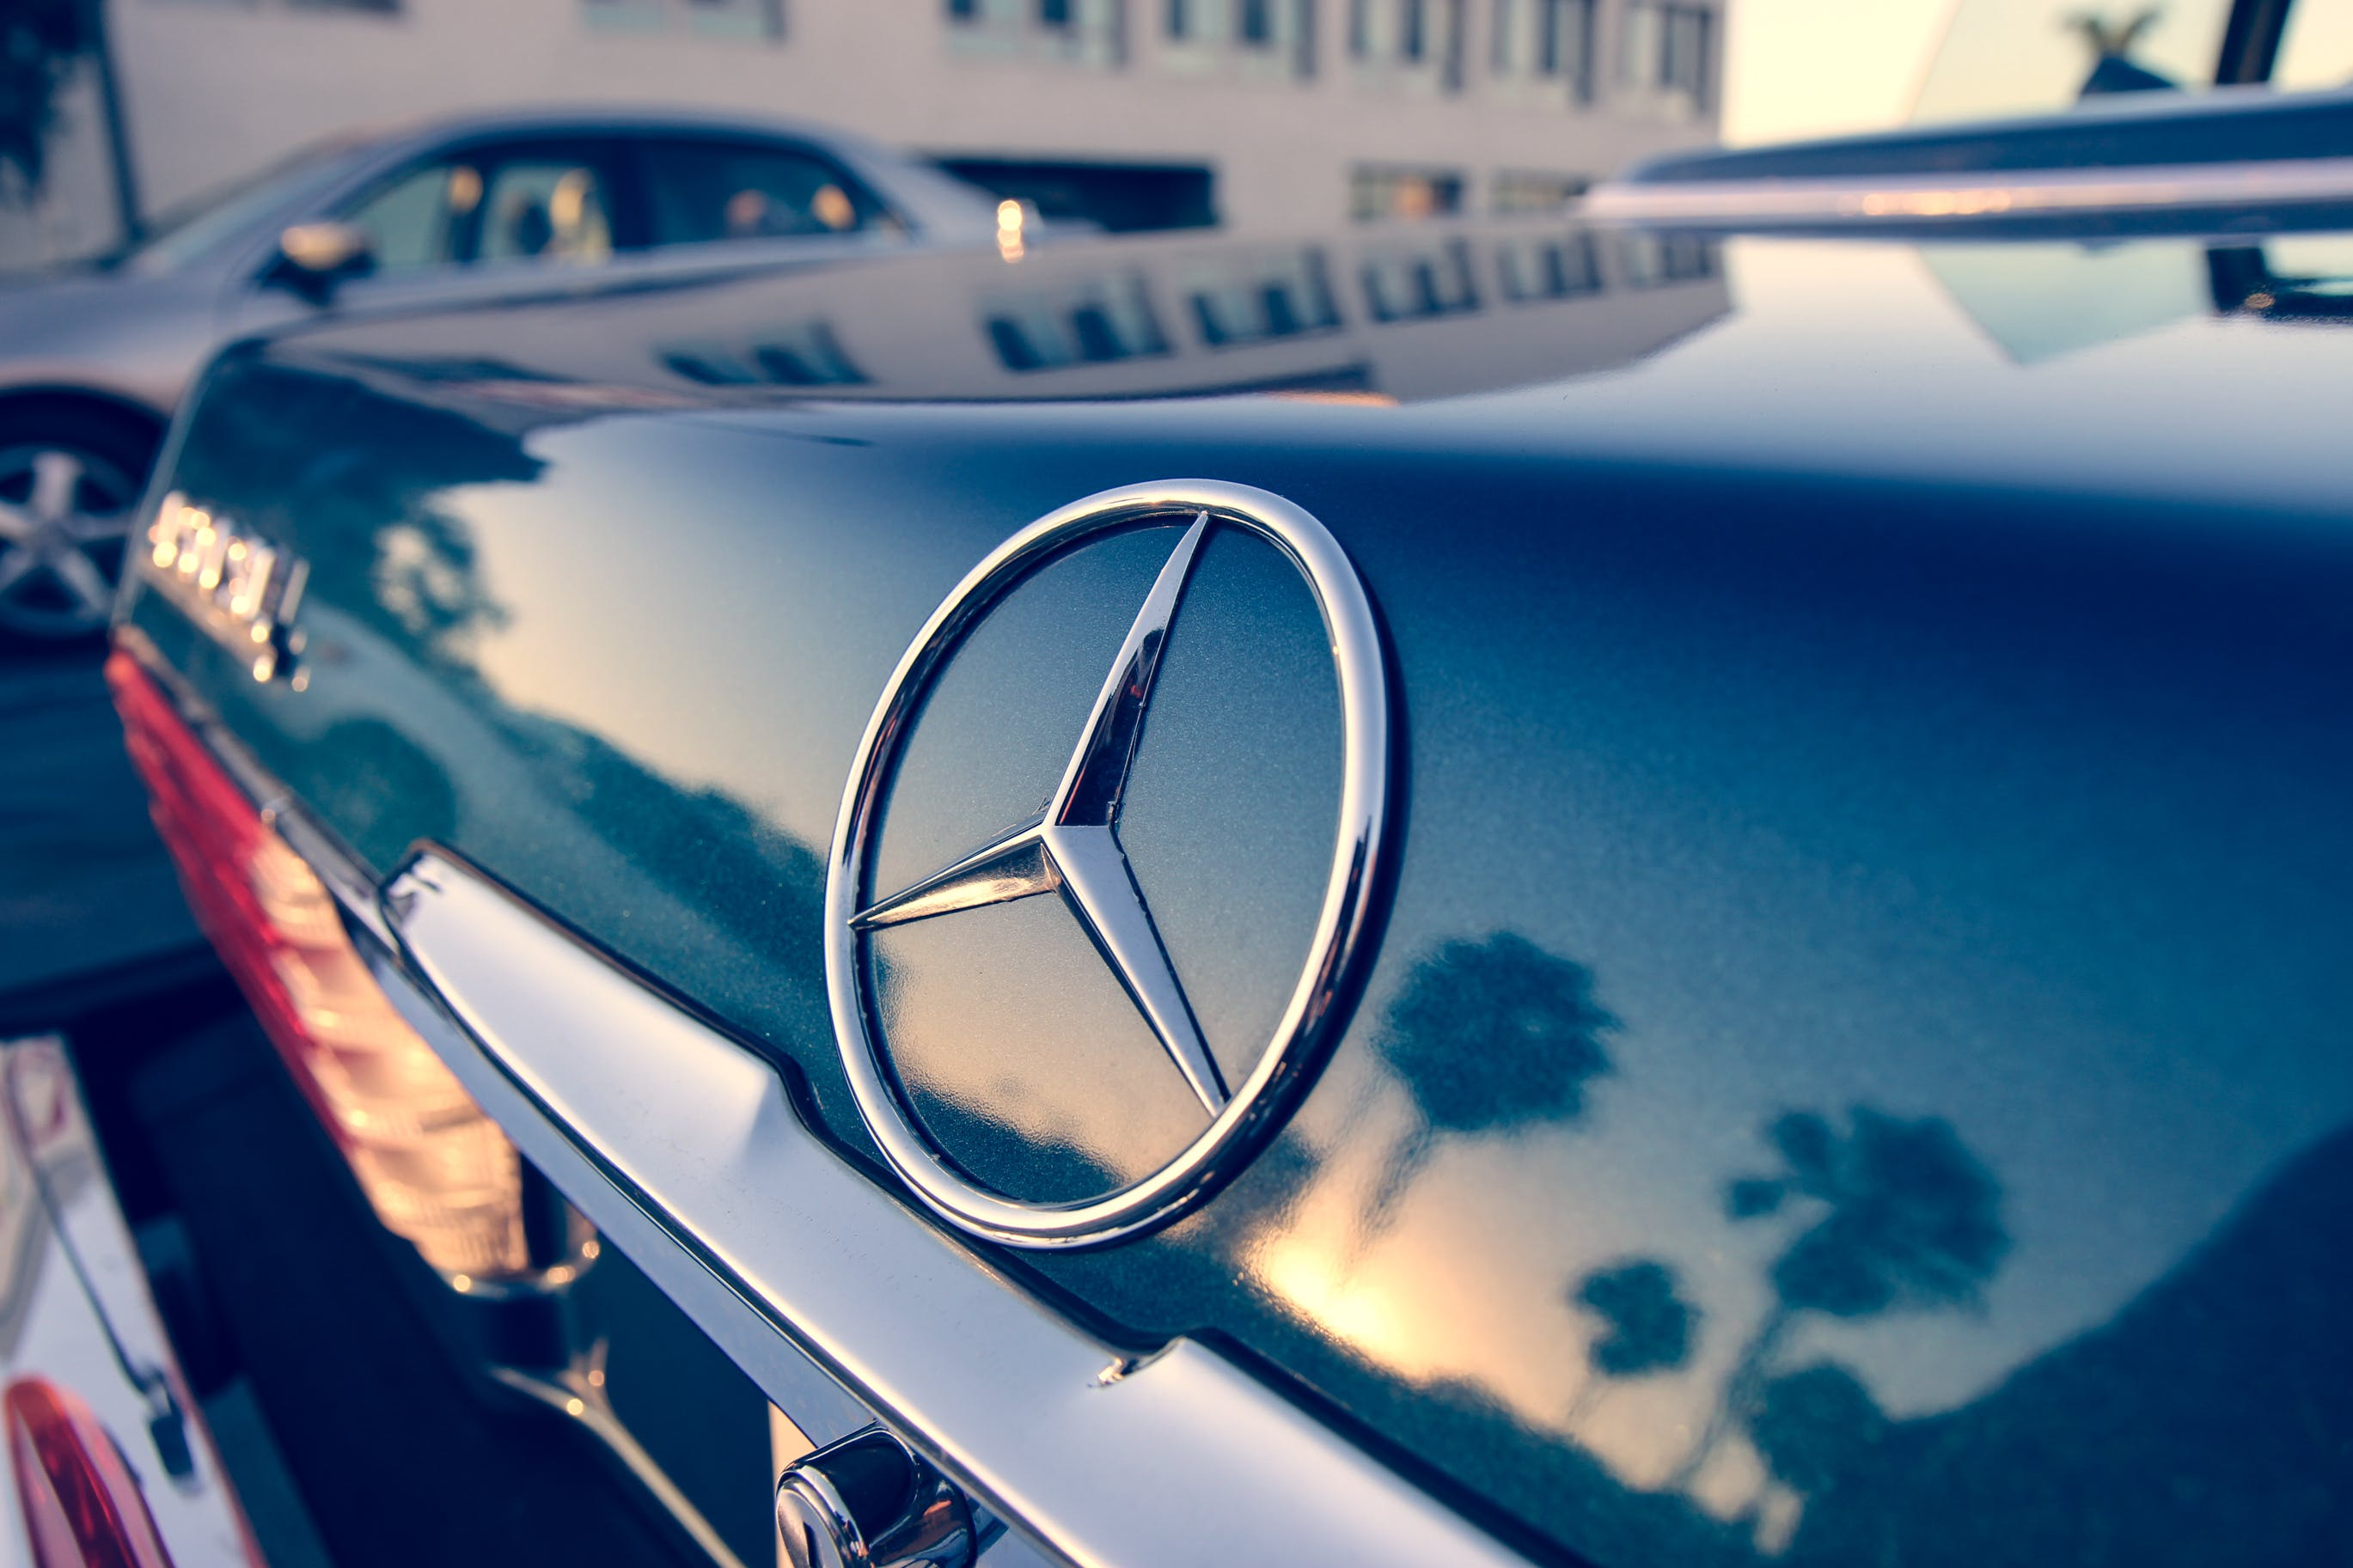 Close Up Photography of Chrome Mercedes-benz Car Emblem